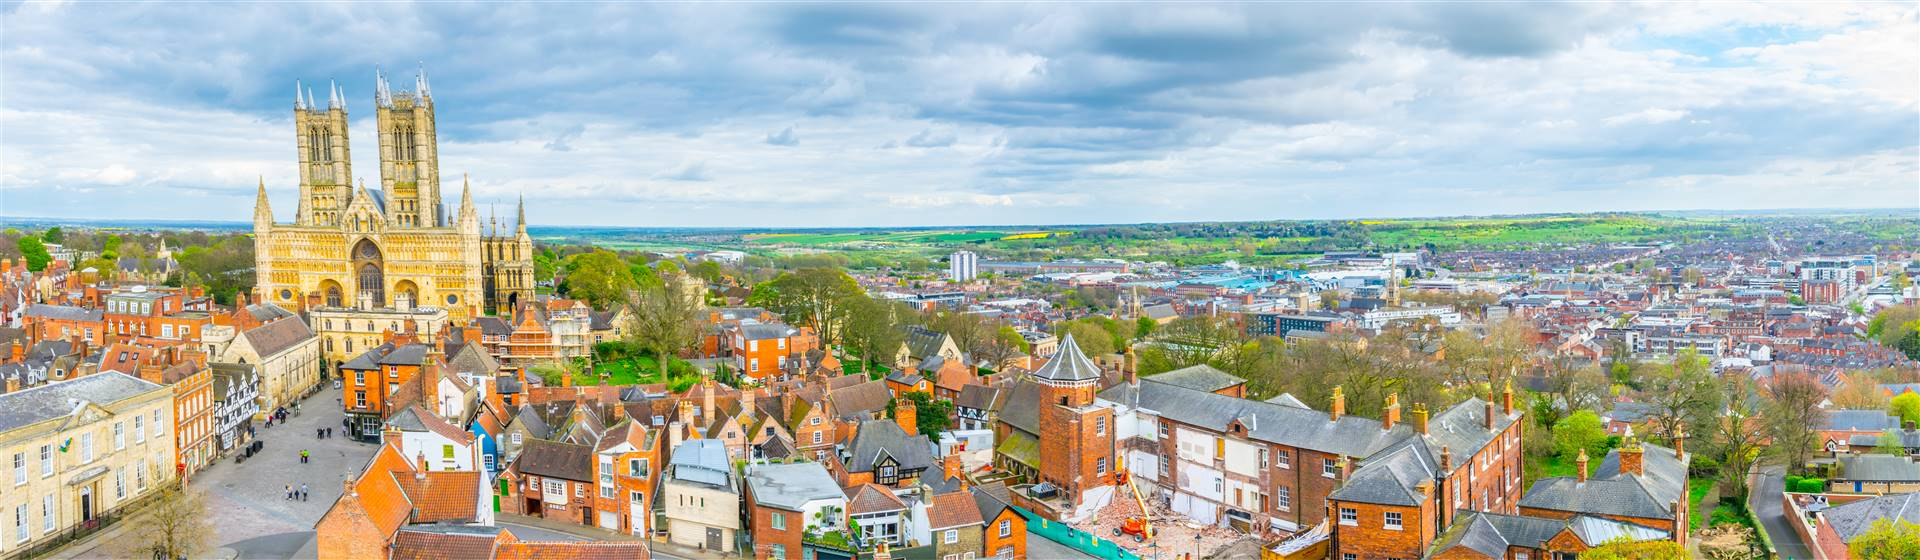 Aerial photo of the the attractive city of Lincoln on a sunny day